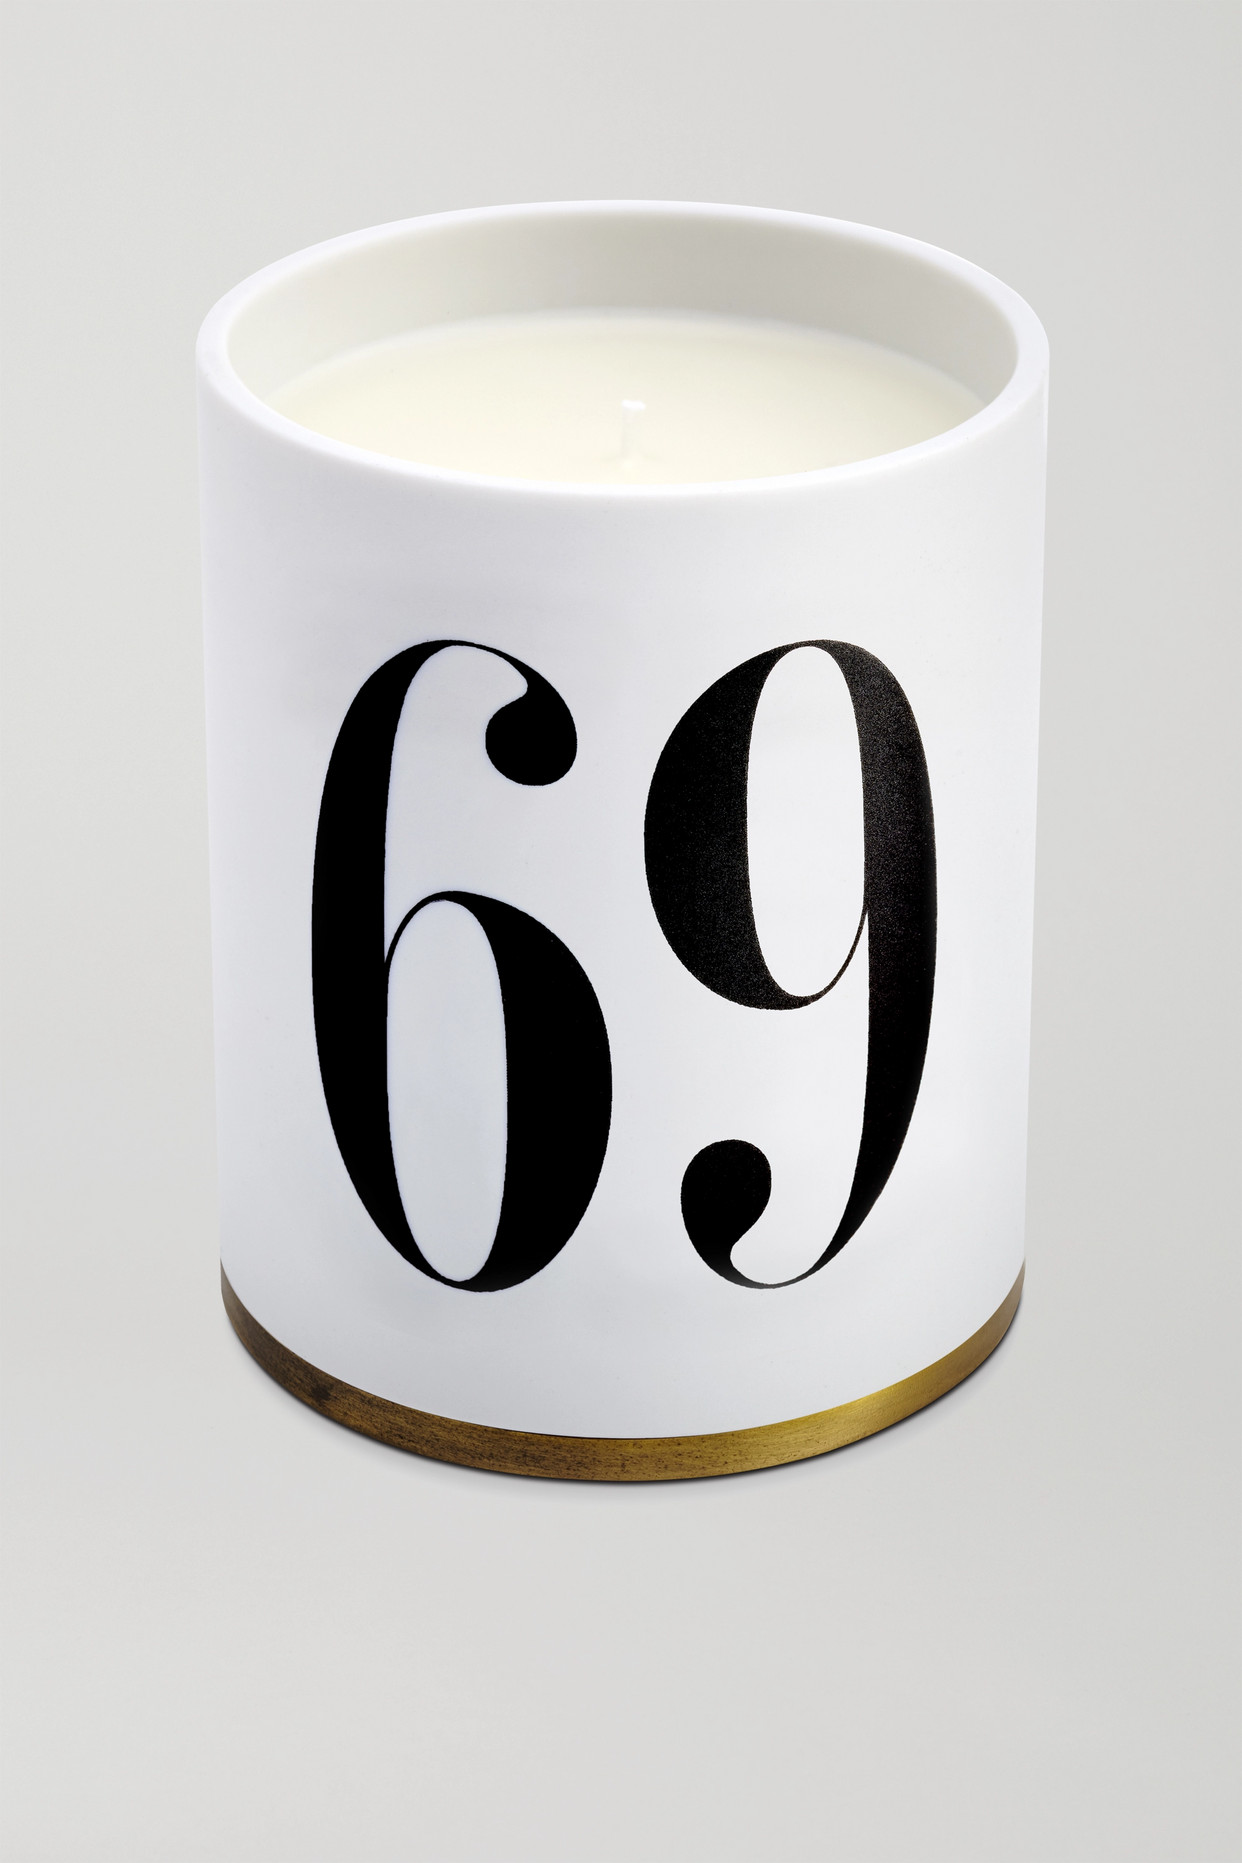 L'OBJET - Oh Mon Dieu No.69 Scented Candle, 350g - White - one size